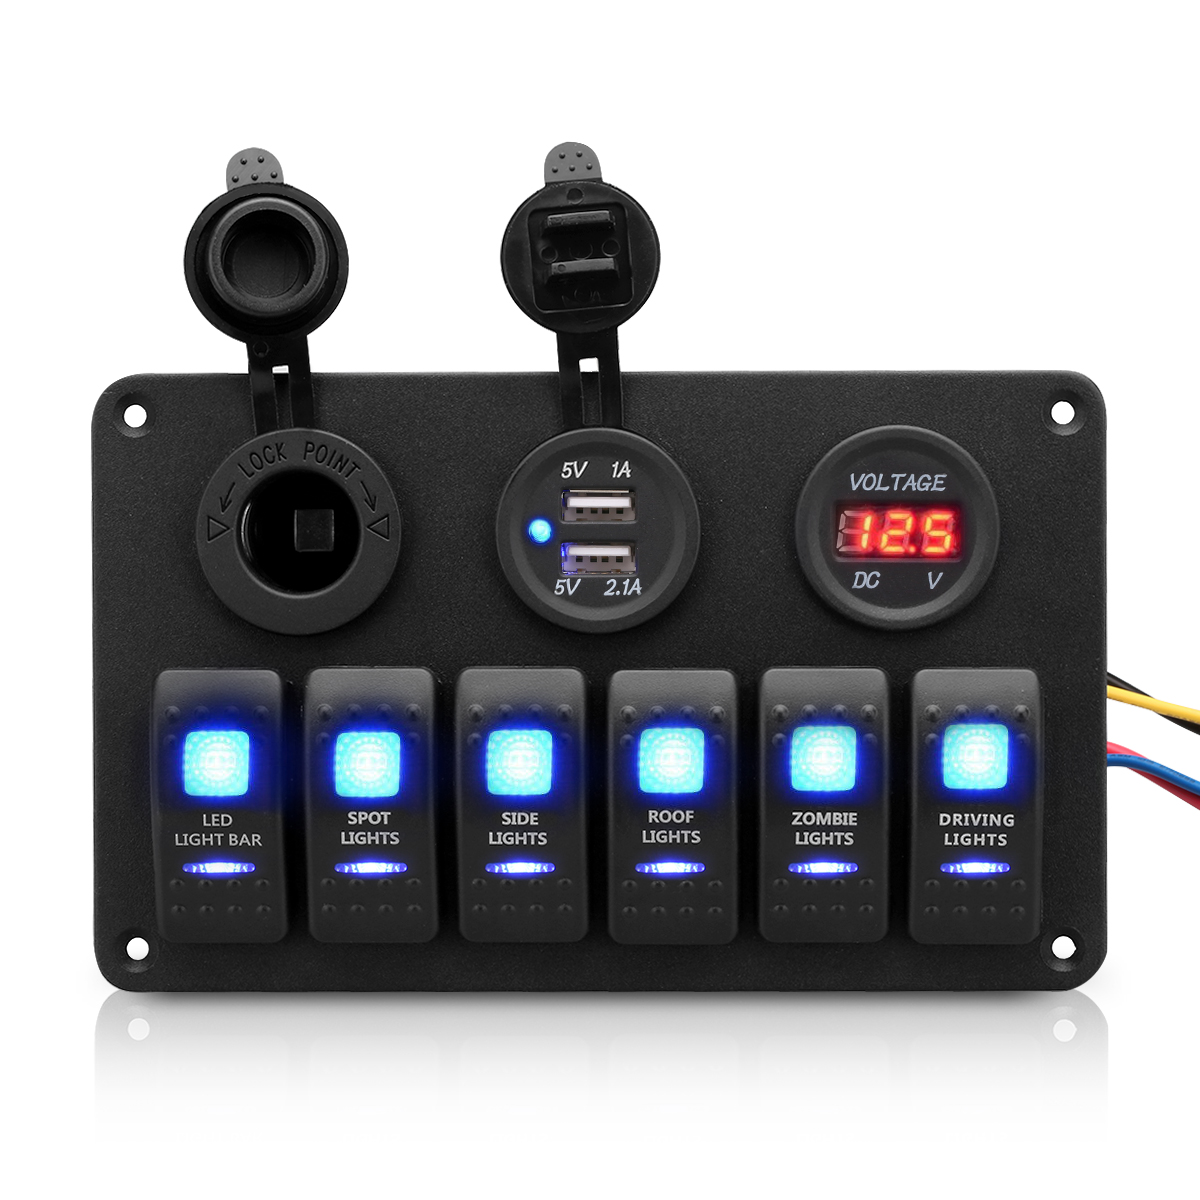 hight resolution of 6 gang waterproof aluminum 12v 24v boat marine rocker switch panel 2 usb charger cigarette socket voltmeter walmart com